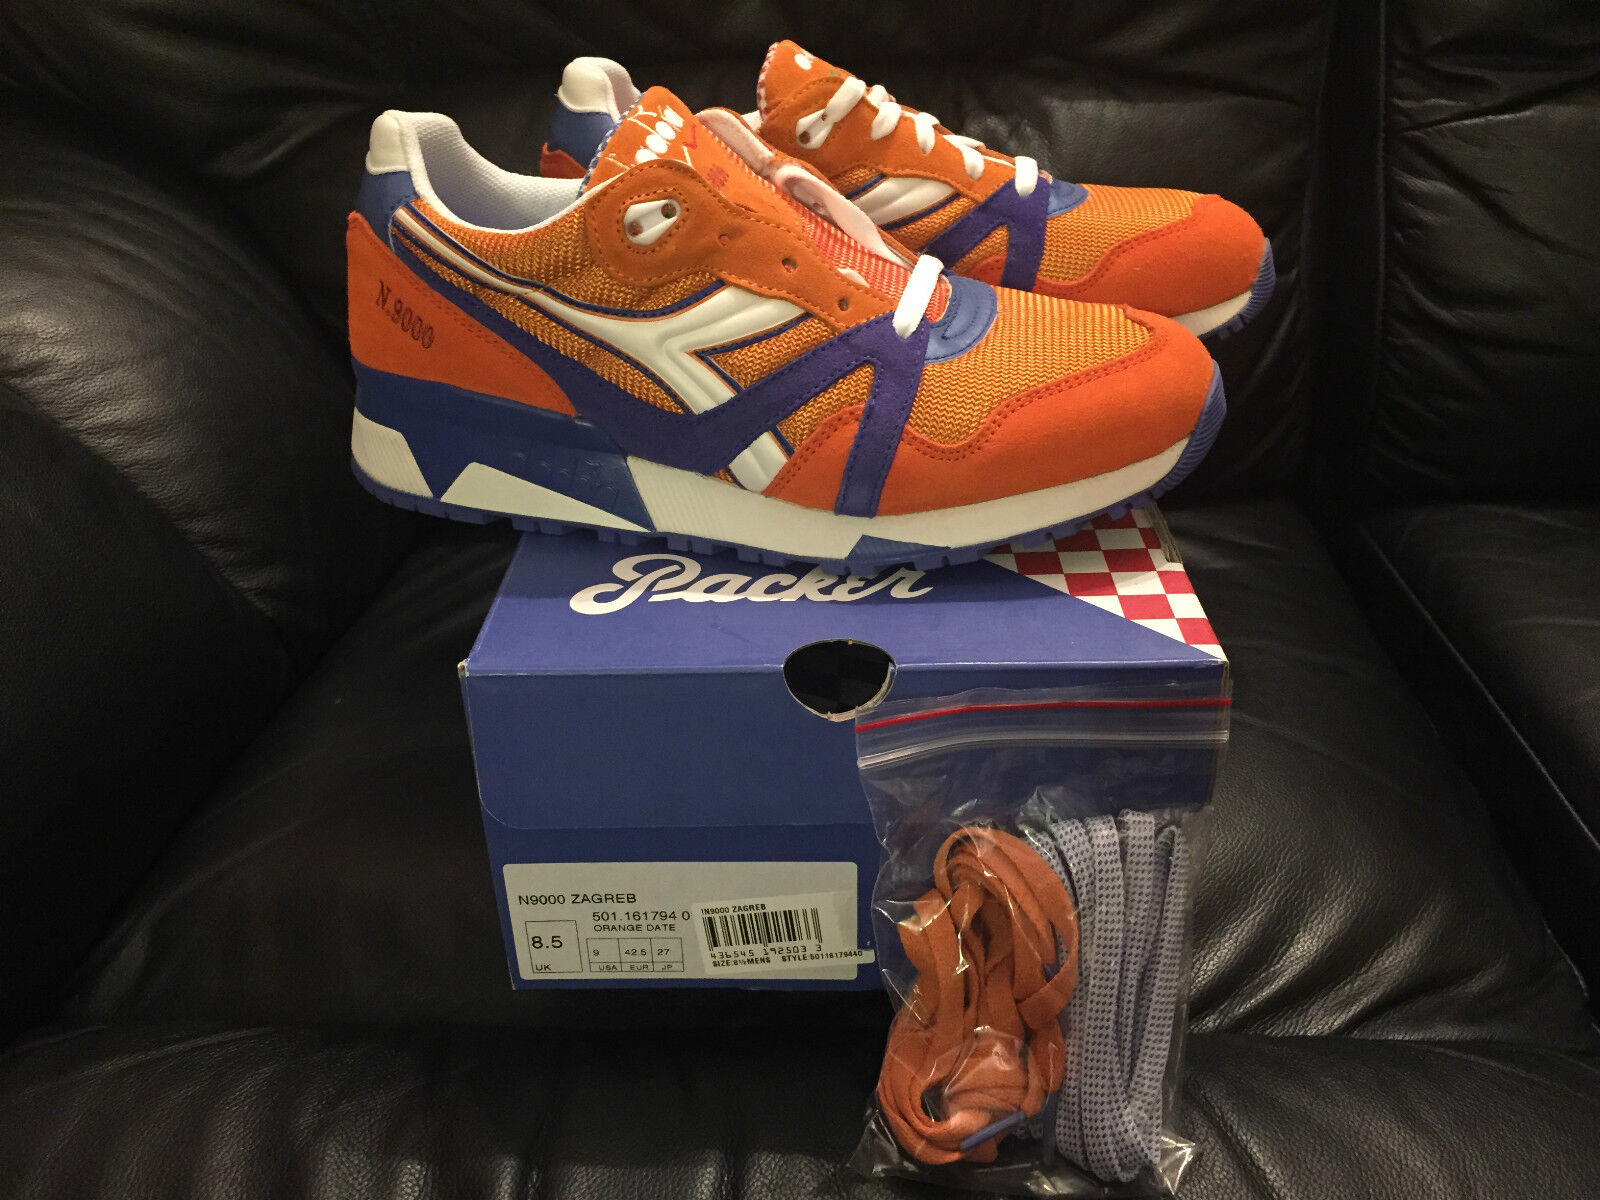 Packer x Diadora Diadora Diadora N.9000 Zagreb Trainers Limited Edition Größes UK 7  8.5 NEW ba012c